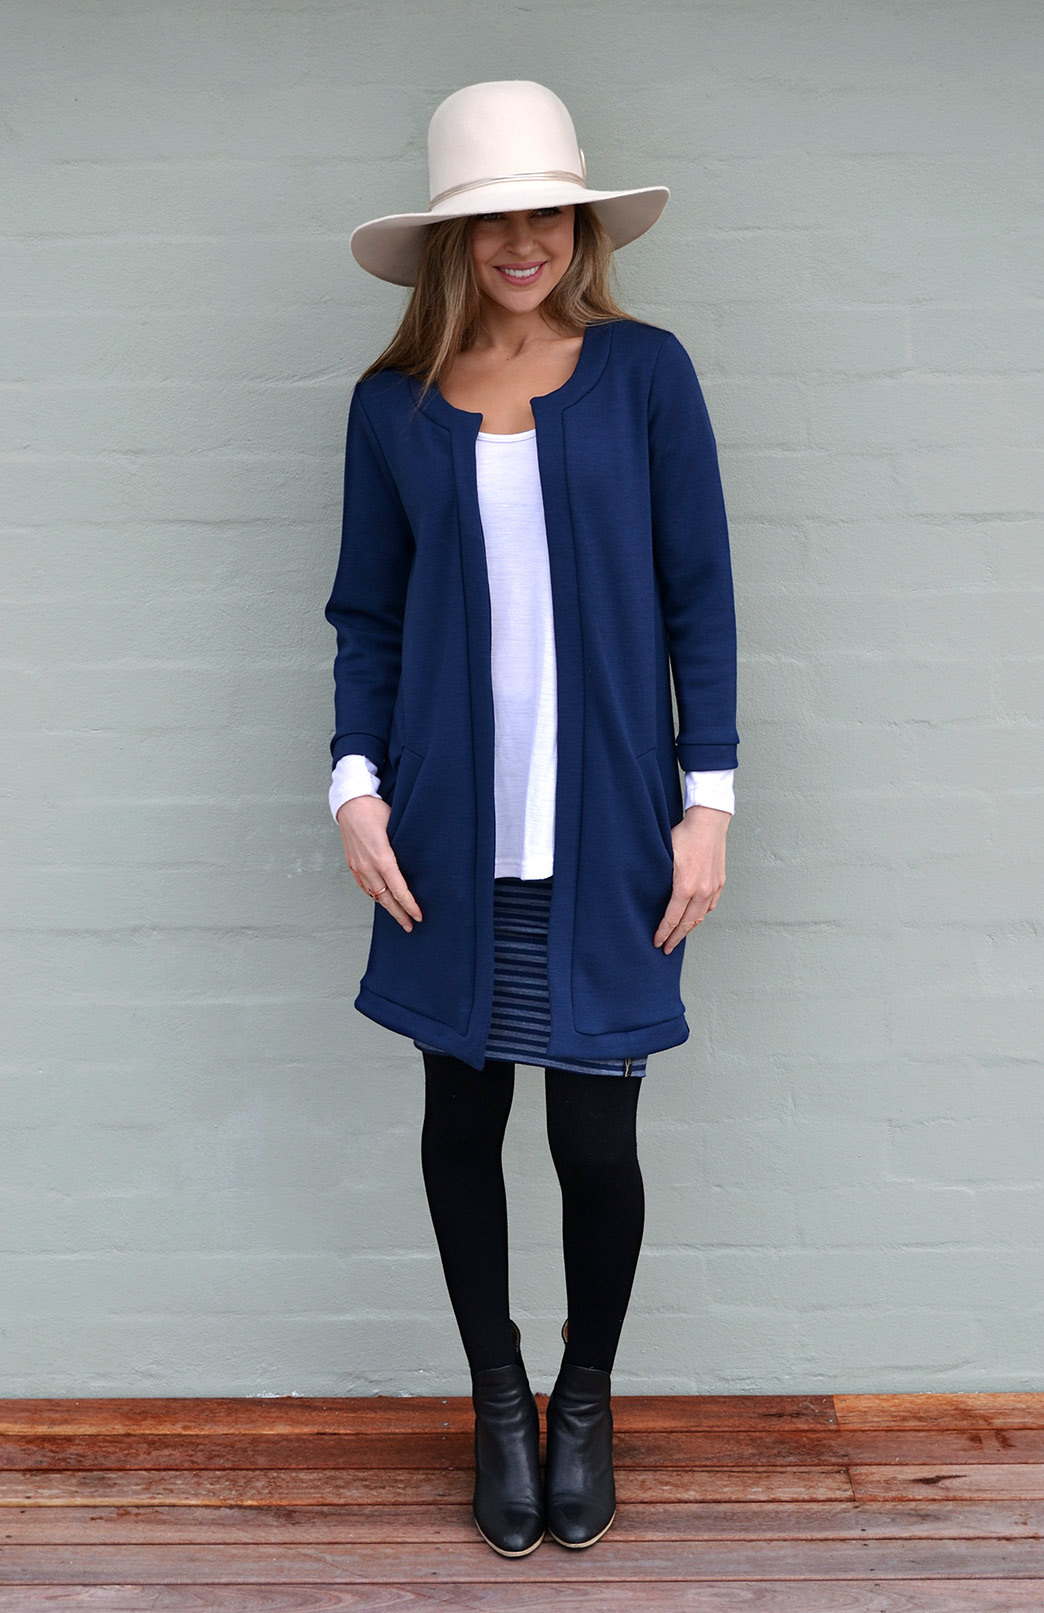 Long Coco Jacket - Women's Blue Merino Wool Long Coco Jacket - Smitten Merino Tasmania Australia